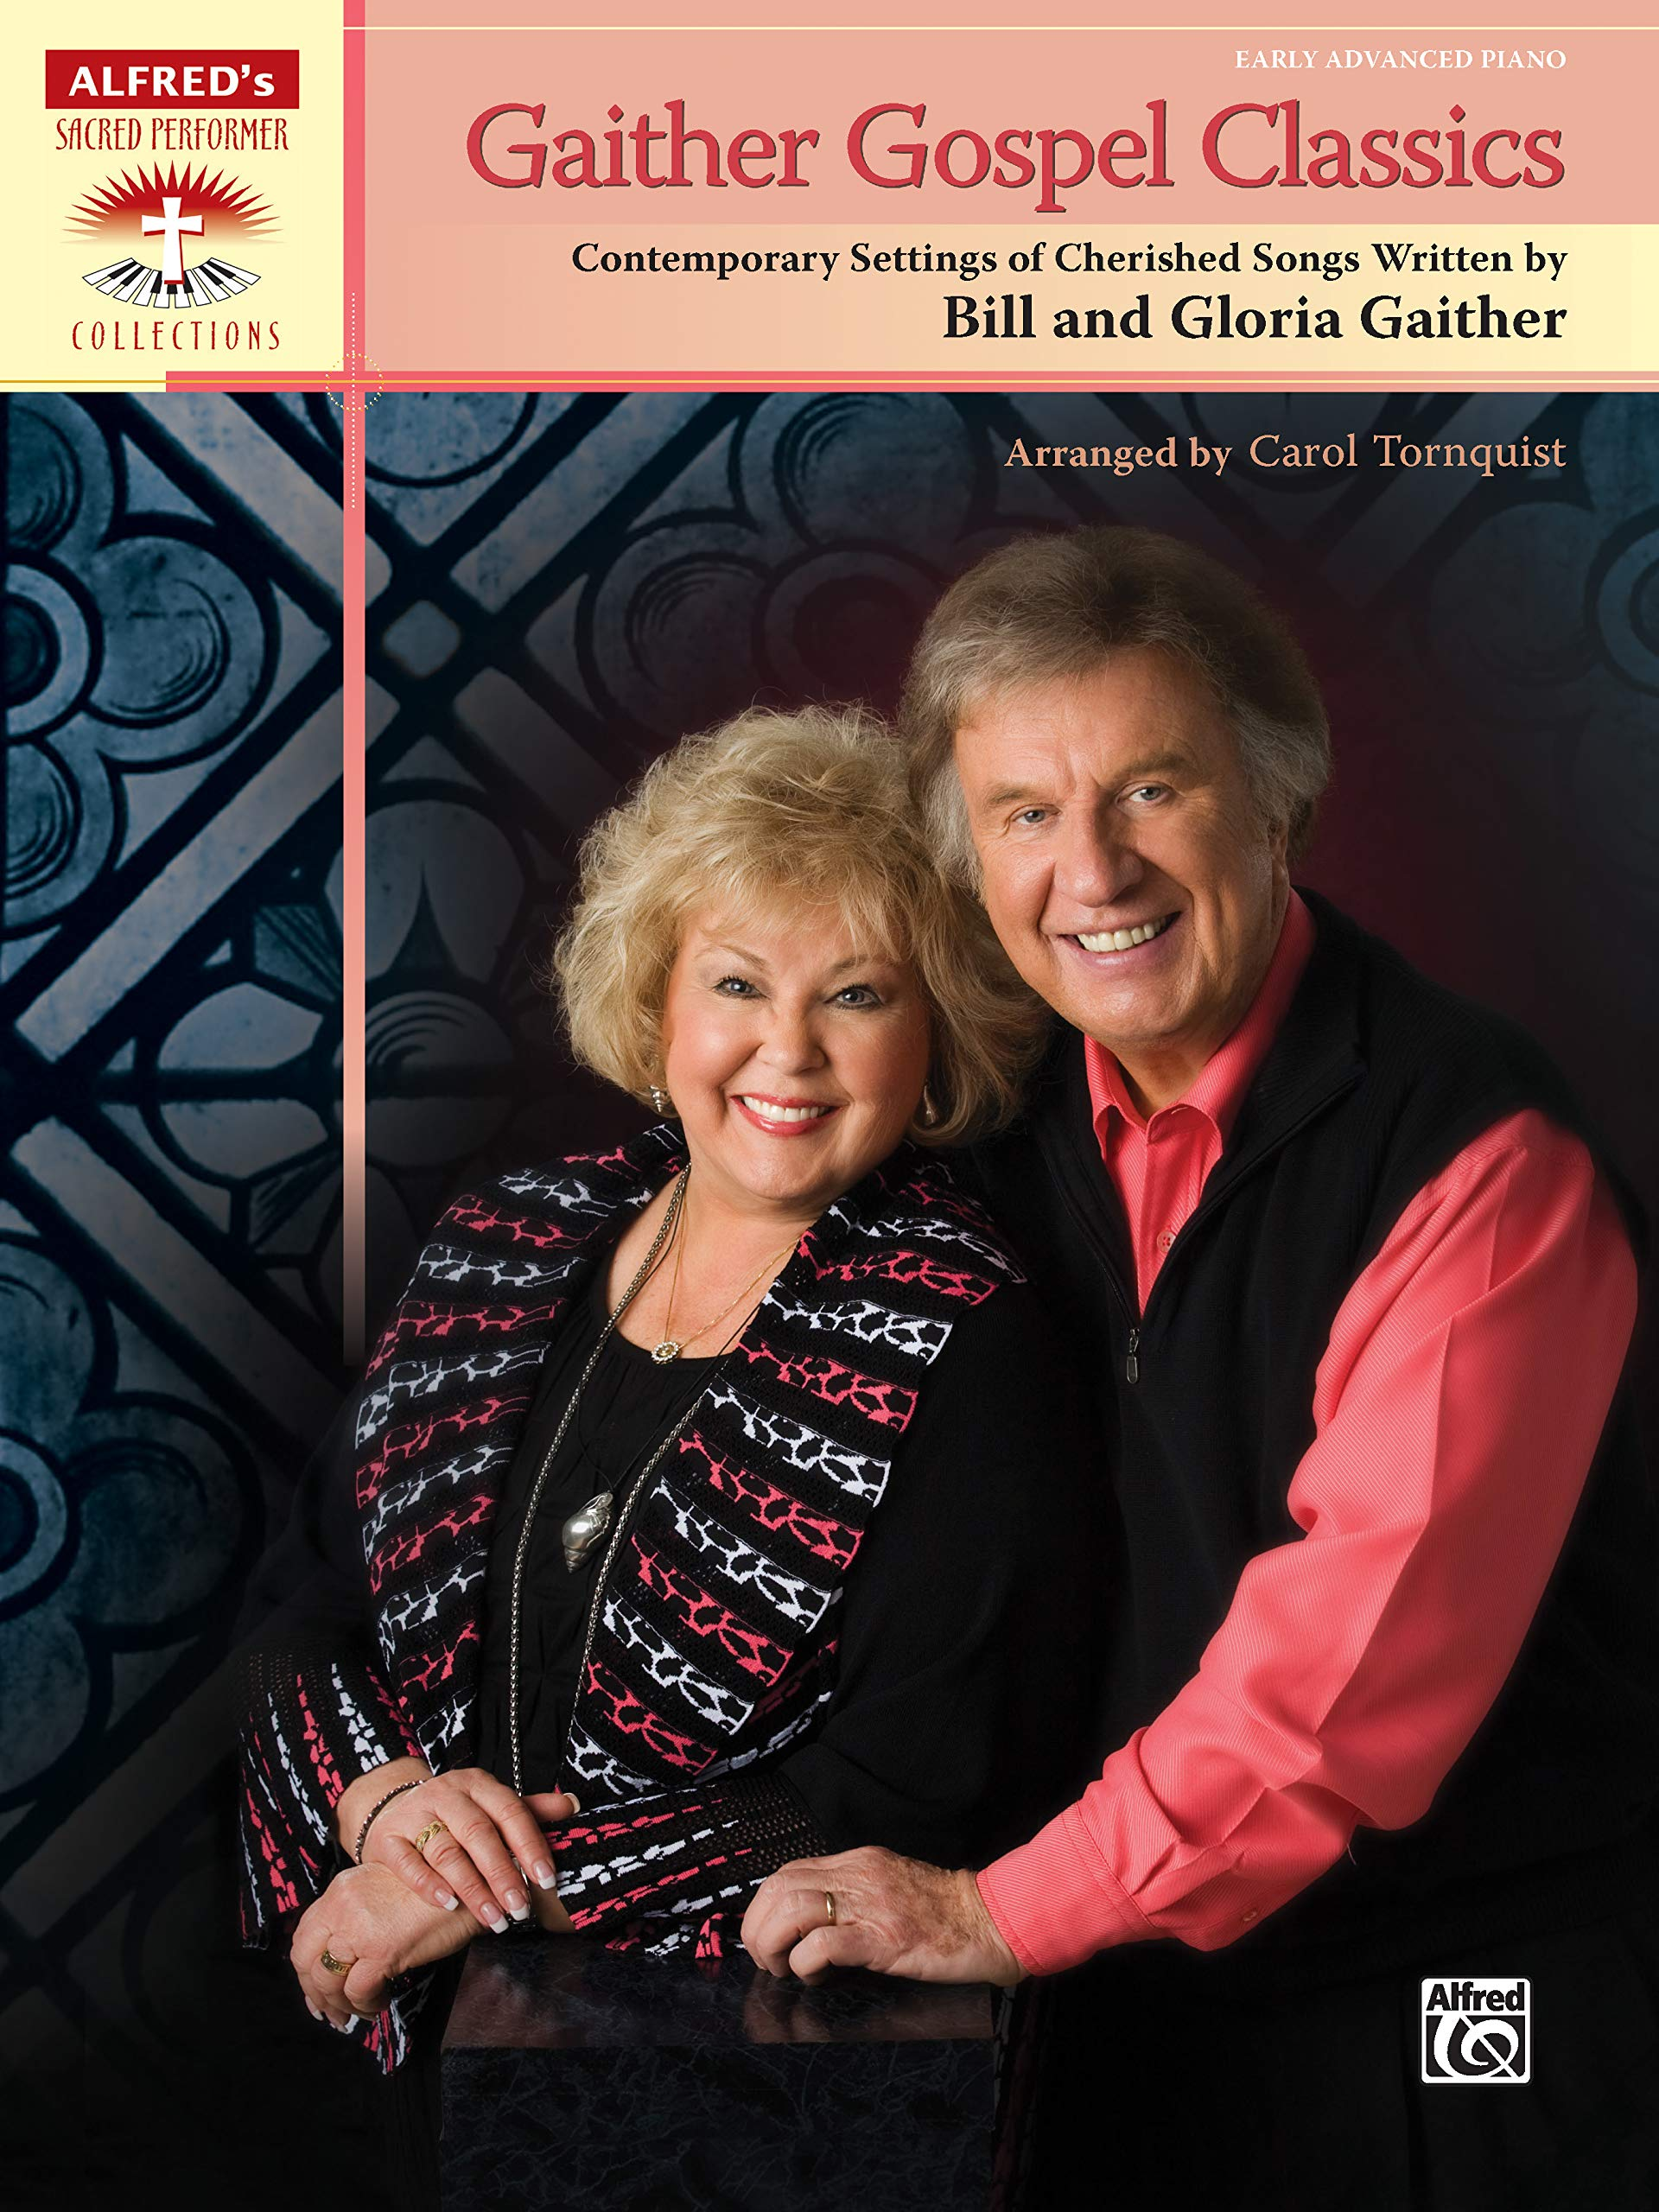 Gaither Gospel Classics: Contemporary Settings of Cherished